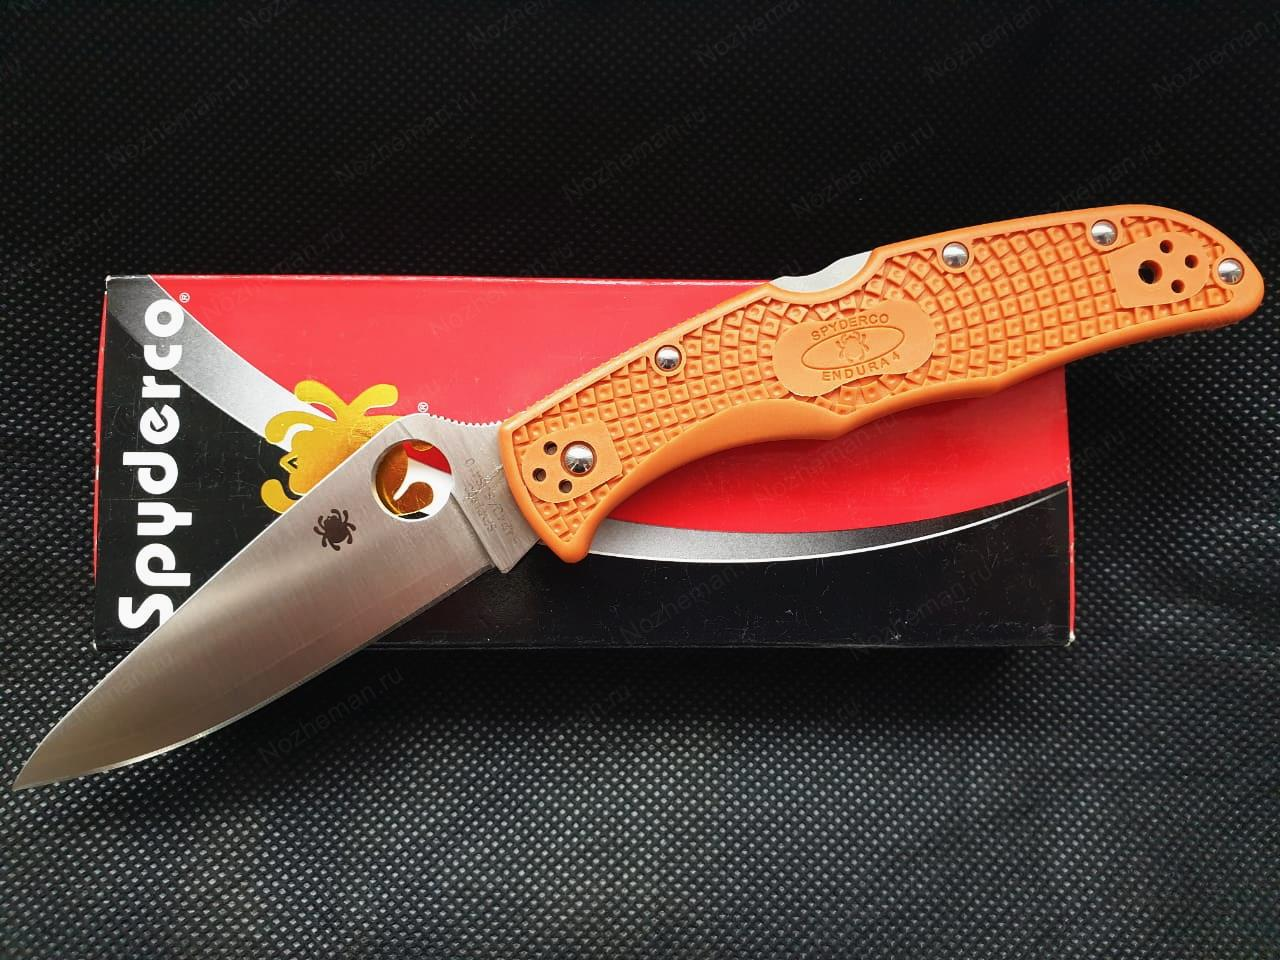 Spyderco Endura 4 Burnt Orange HAP40 1